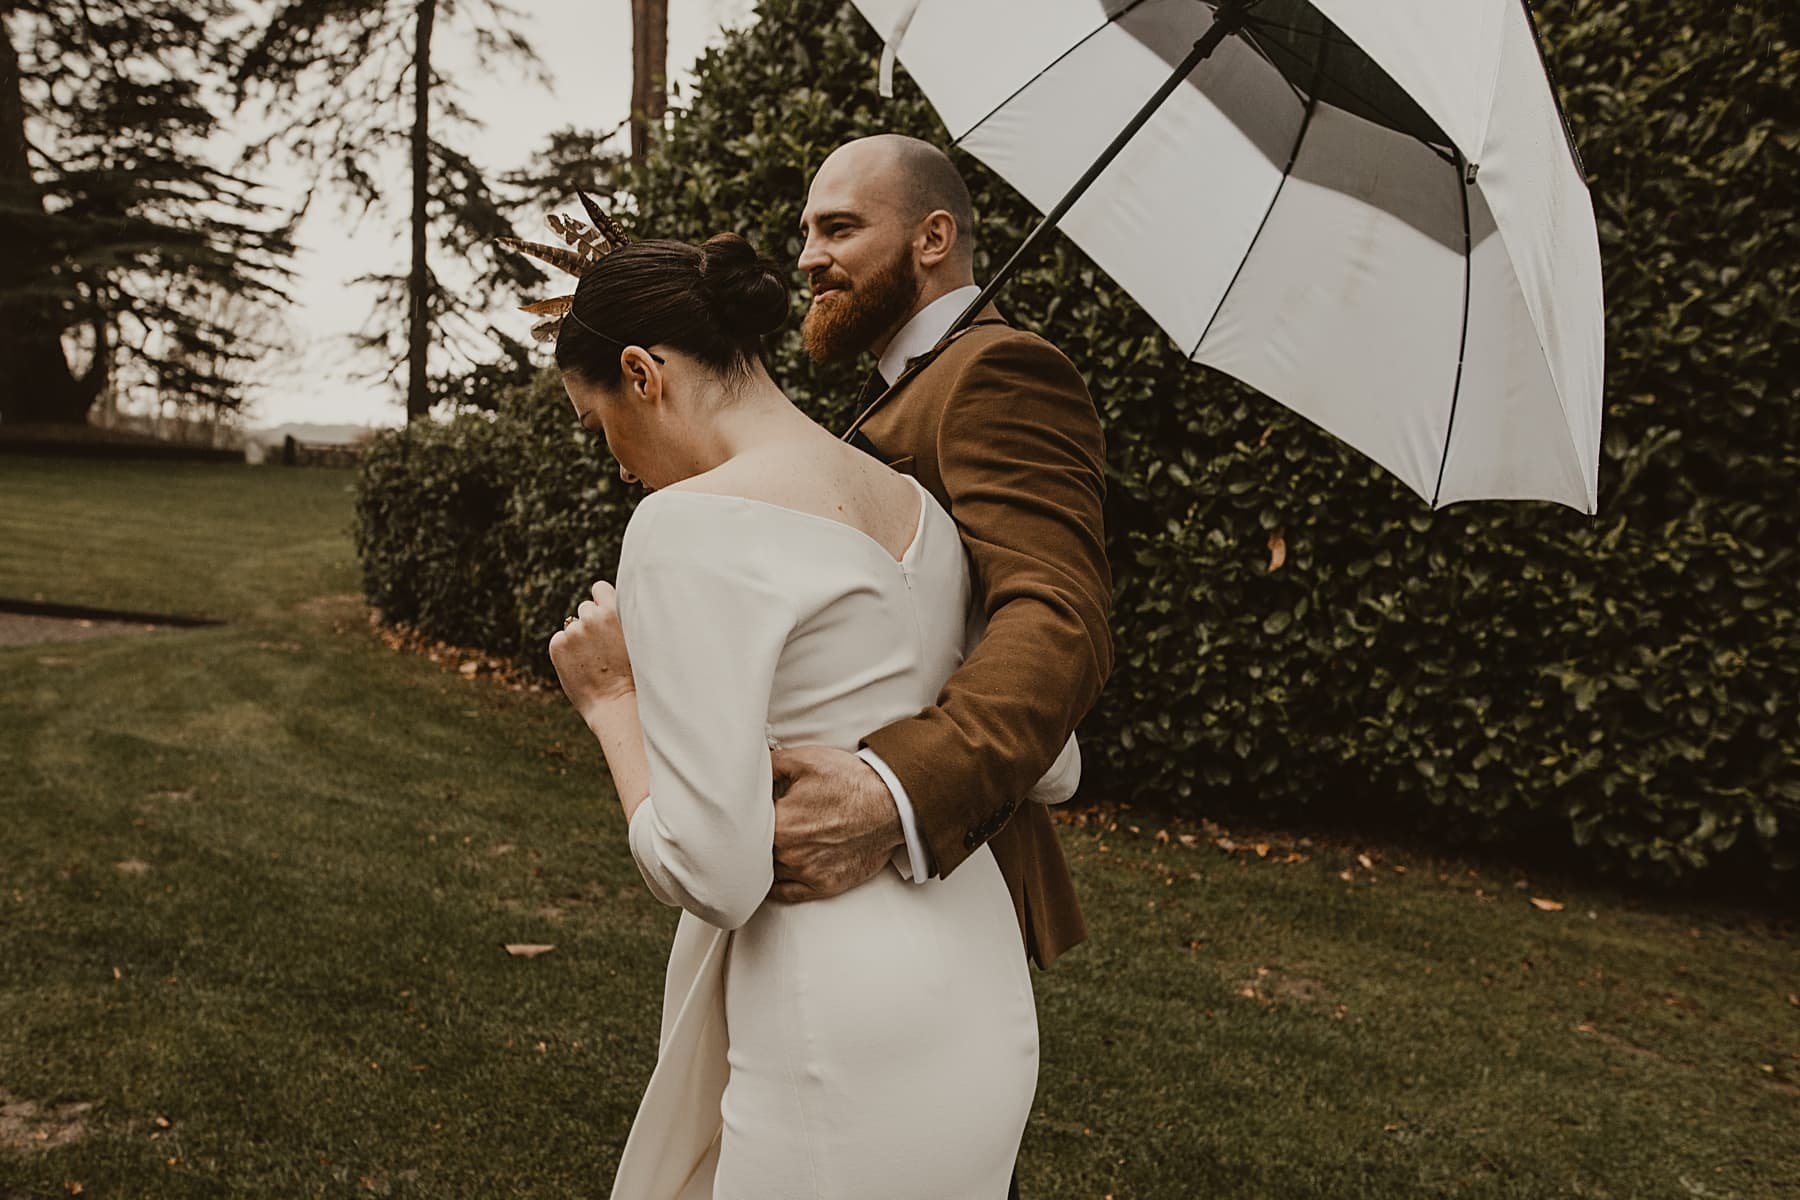 Couple walking with umbrella